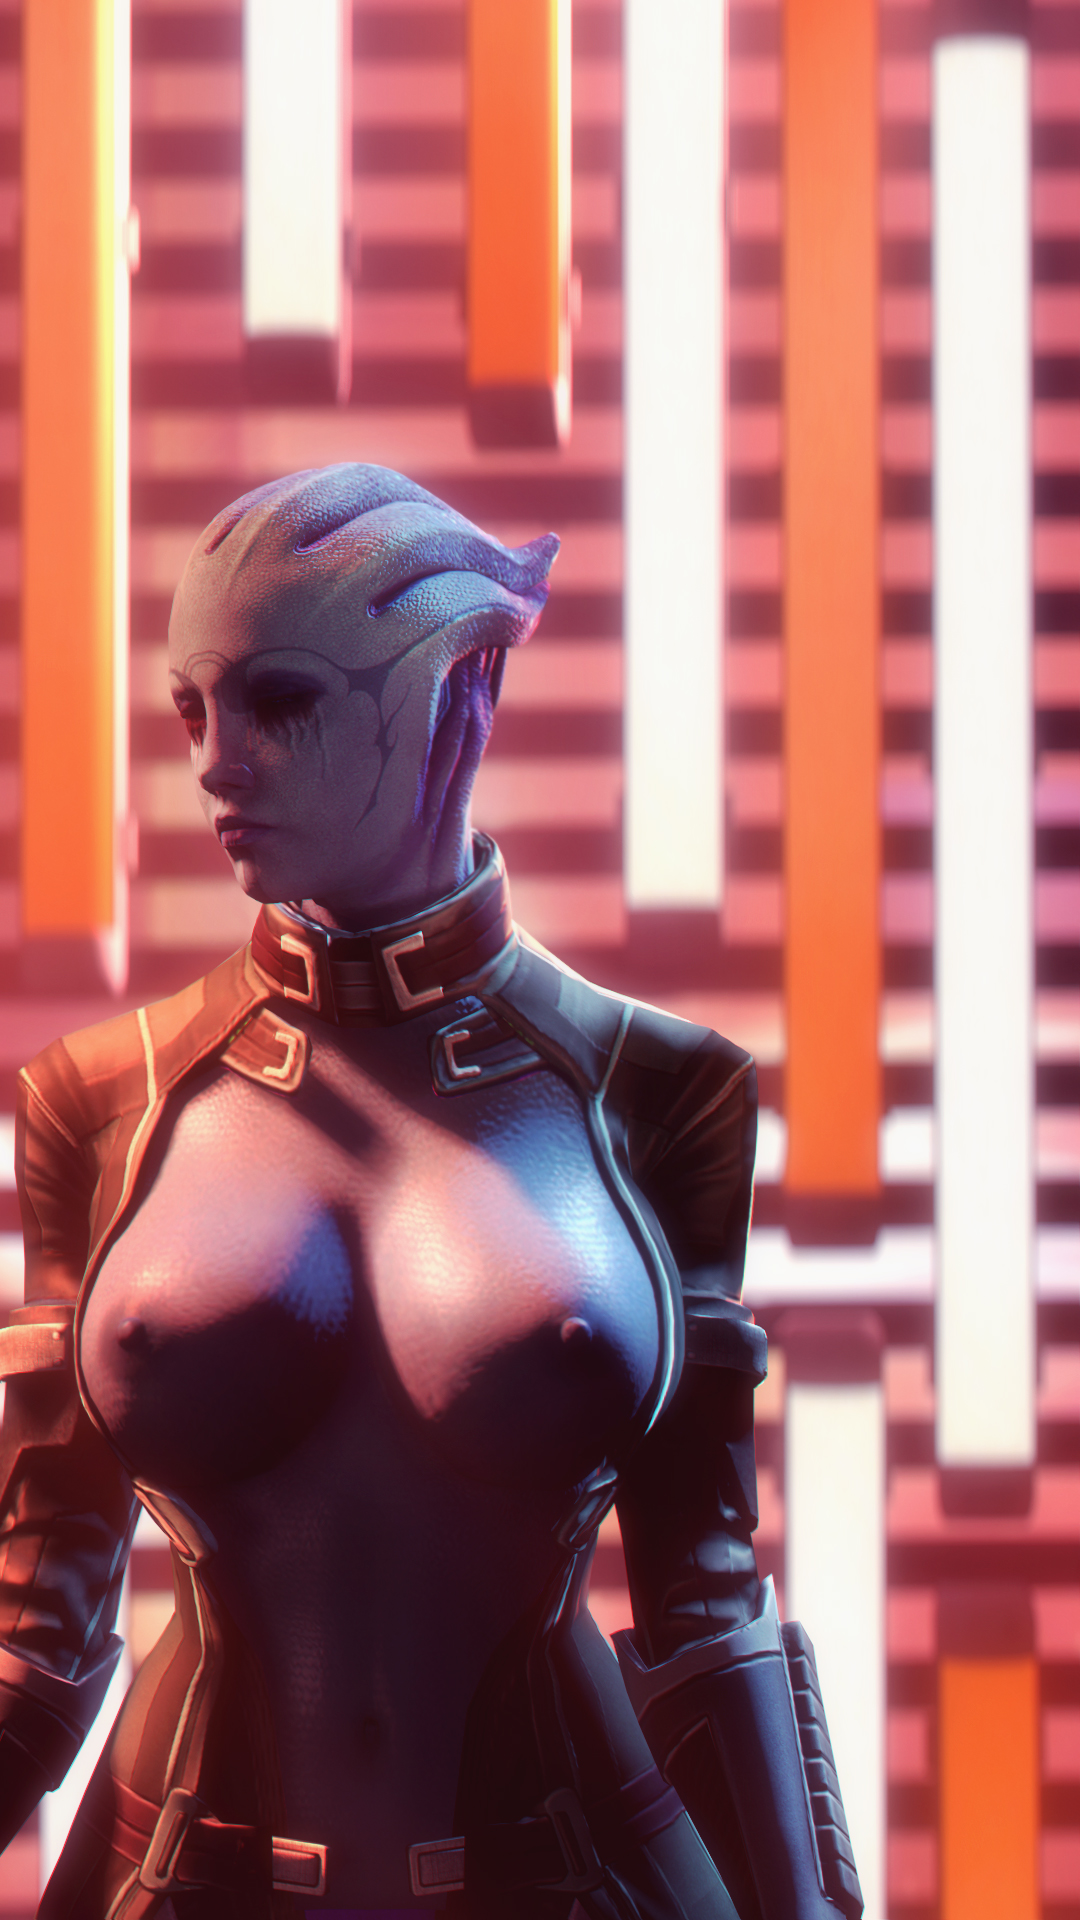 Mass effect 3 ashley williams nude porn hentia tiny pussy